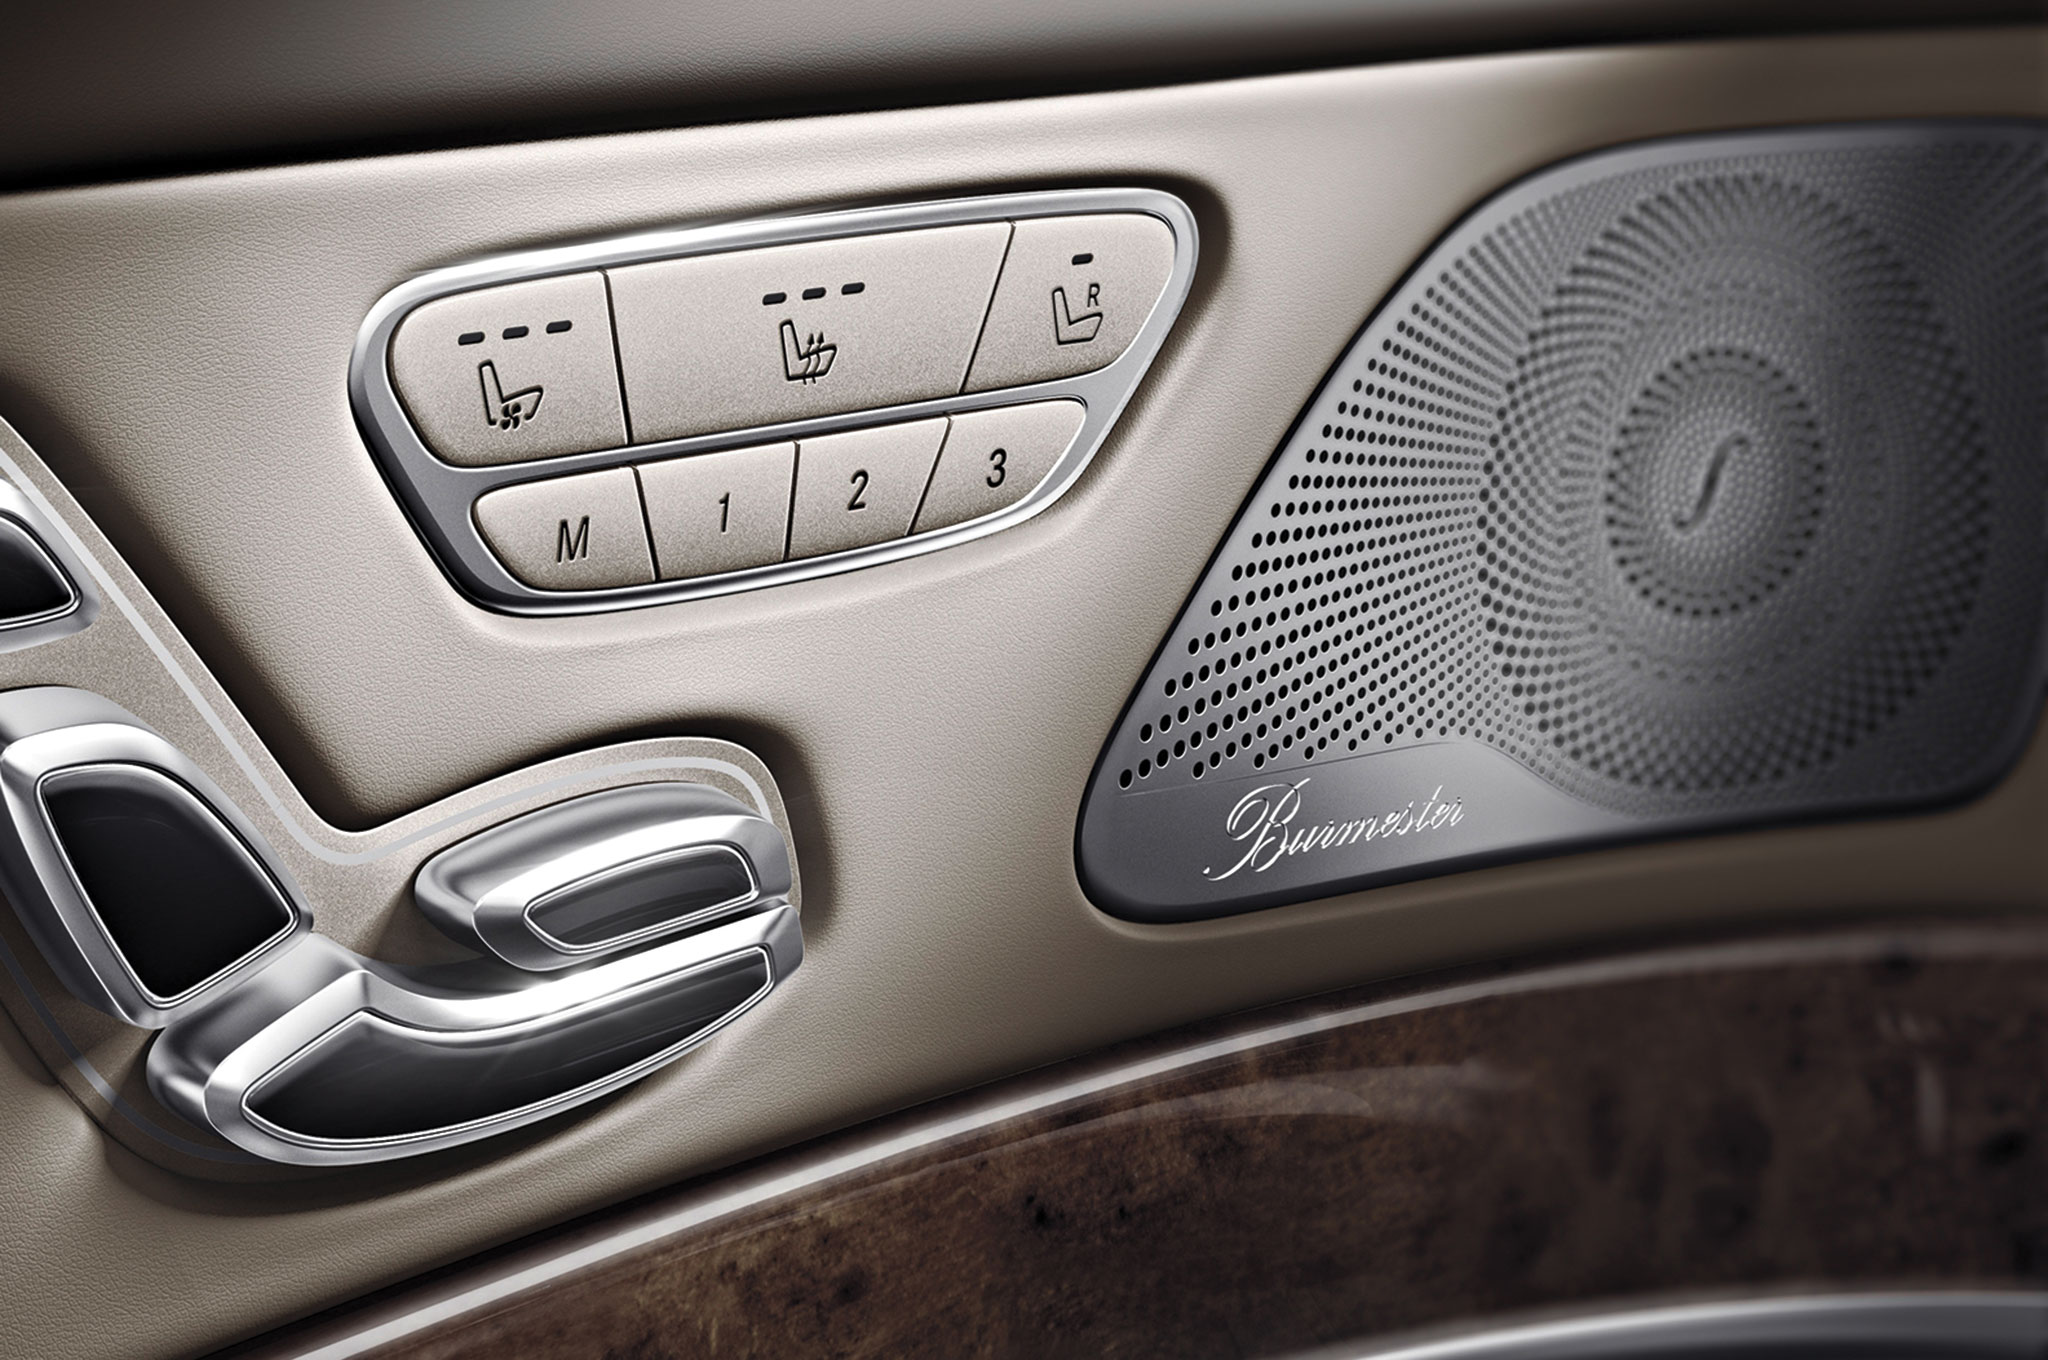 sonic booms putting 8 of the best car audio systems to the test rh automobilemag com